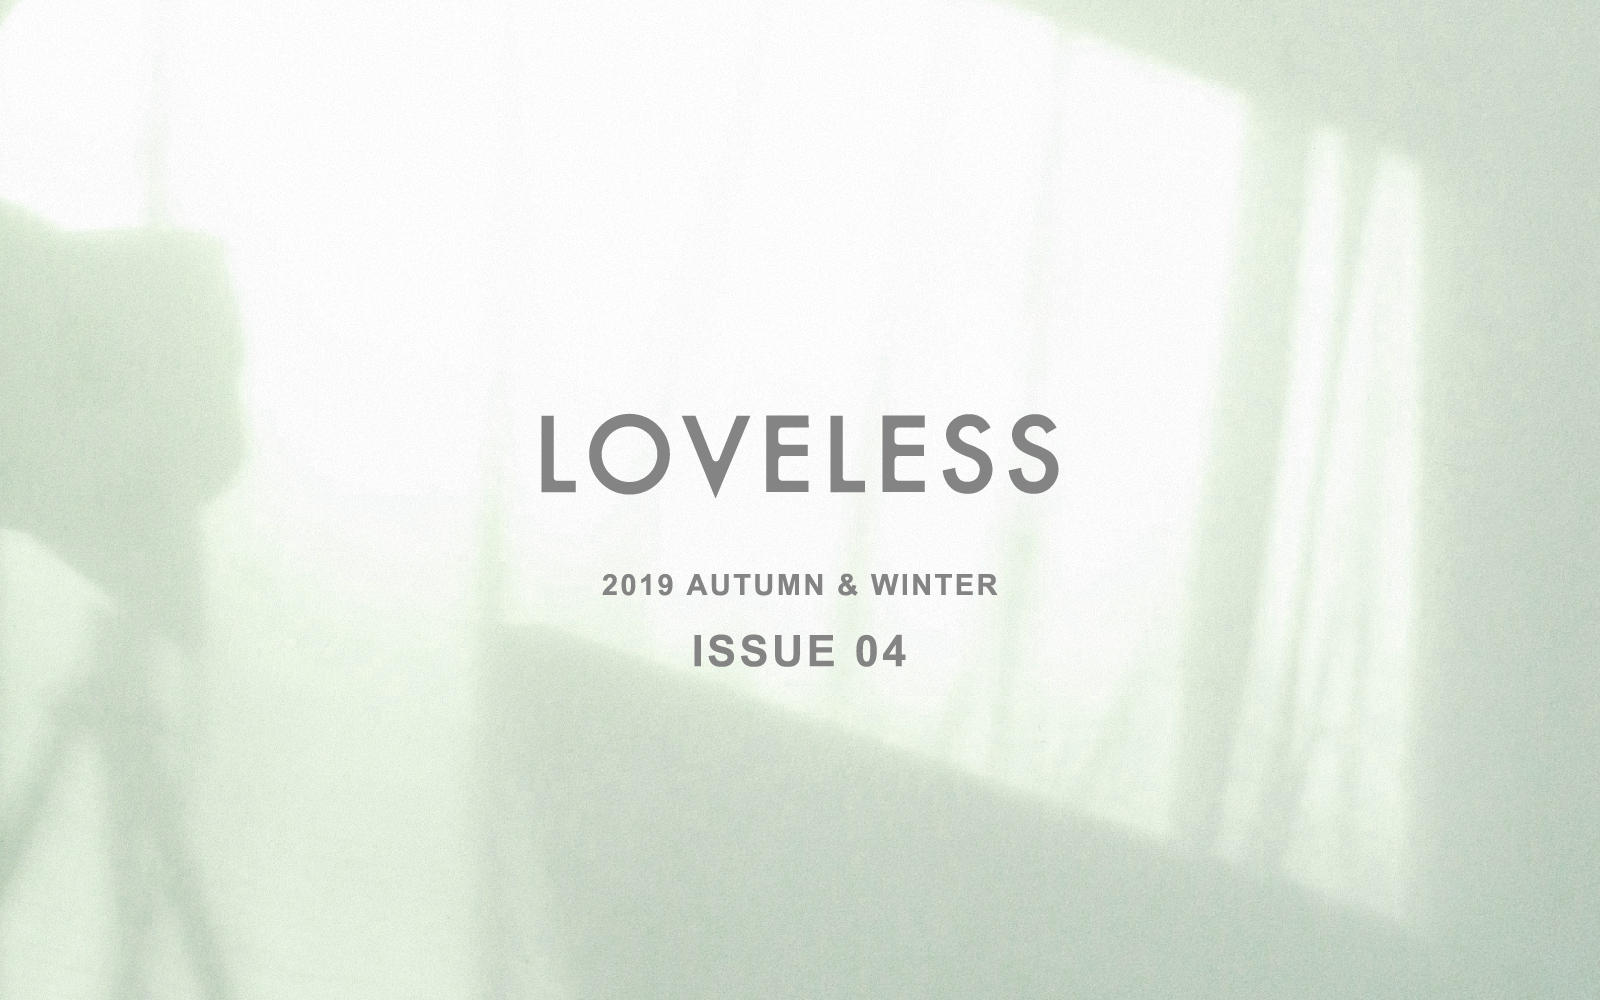 LOVELESS 2019 AUTUMN & WINTER ISSUE 04